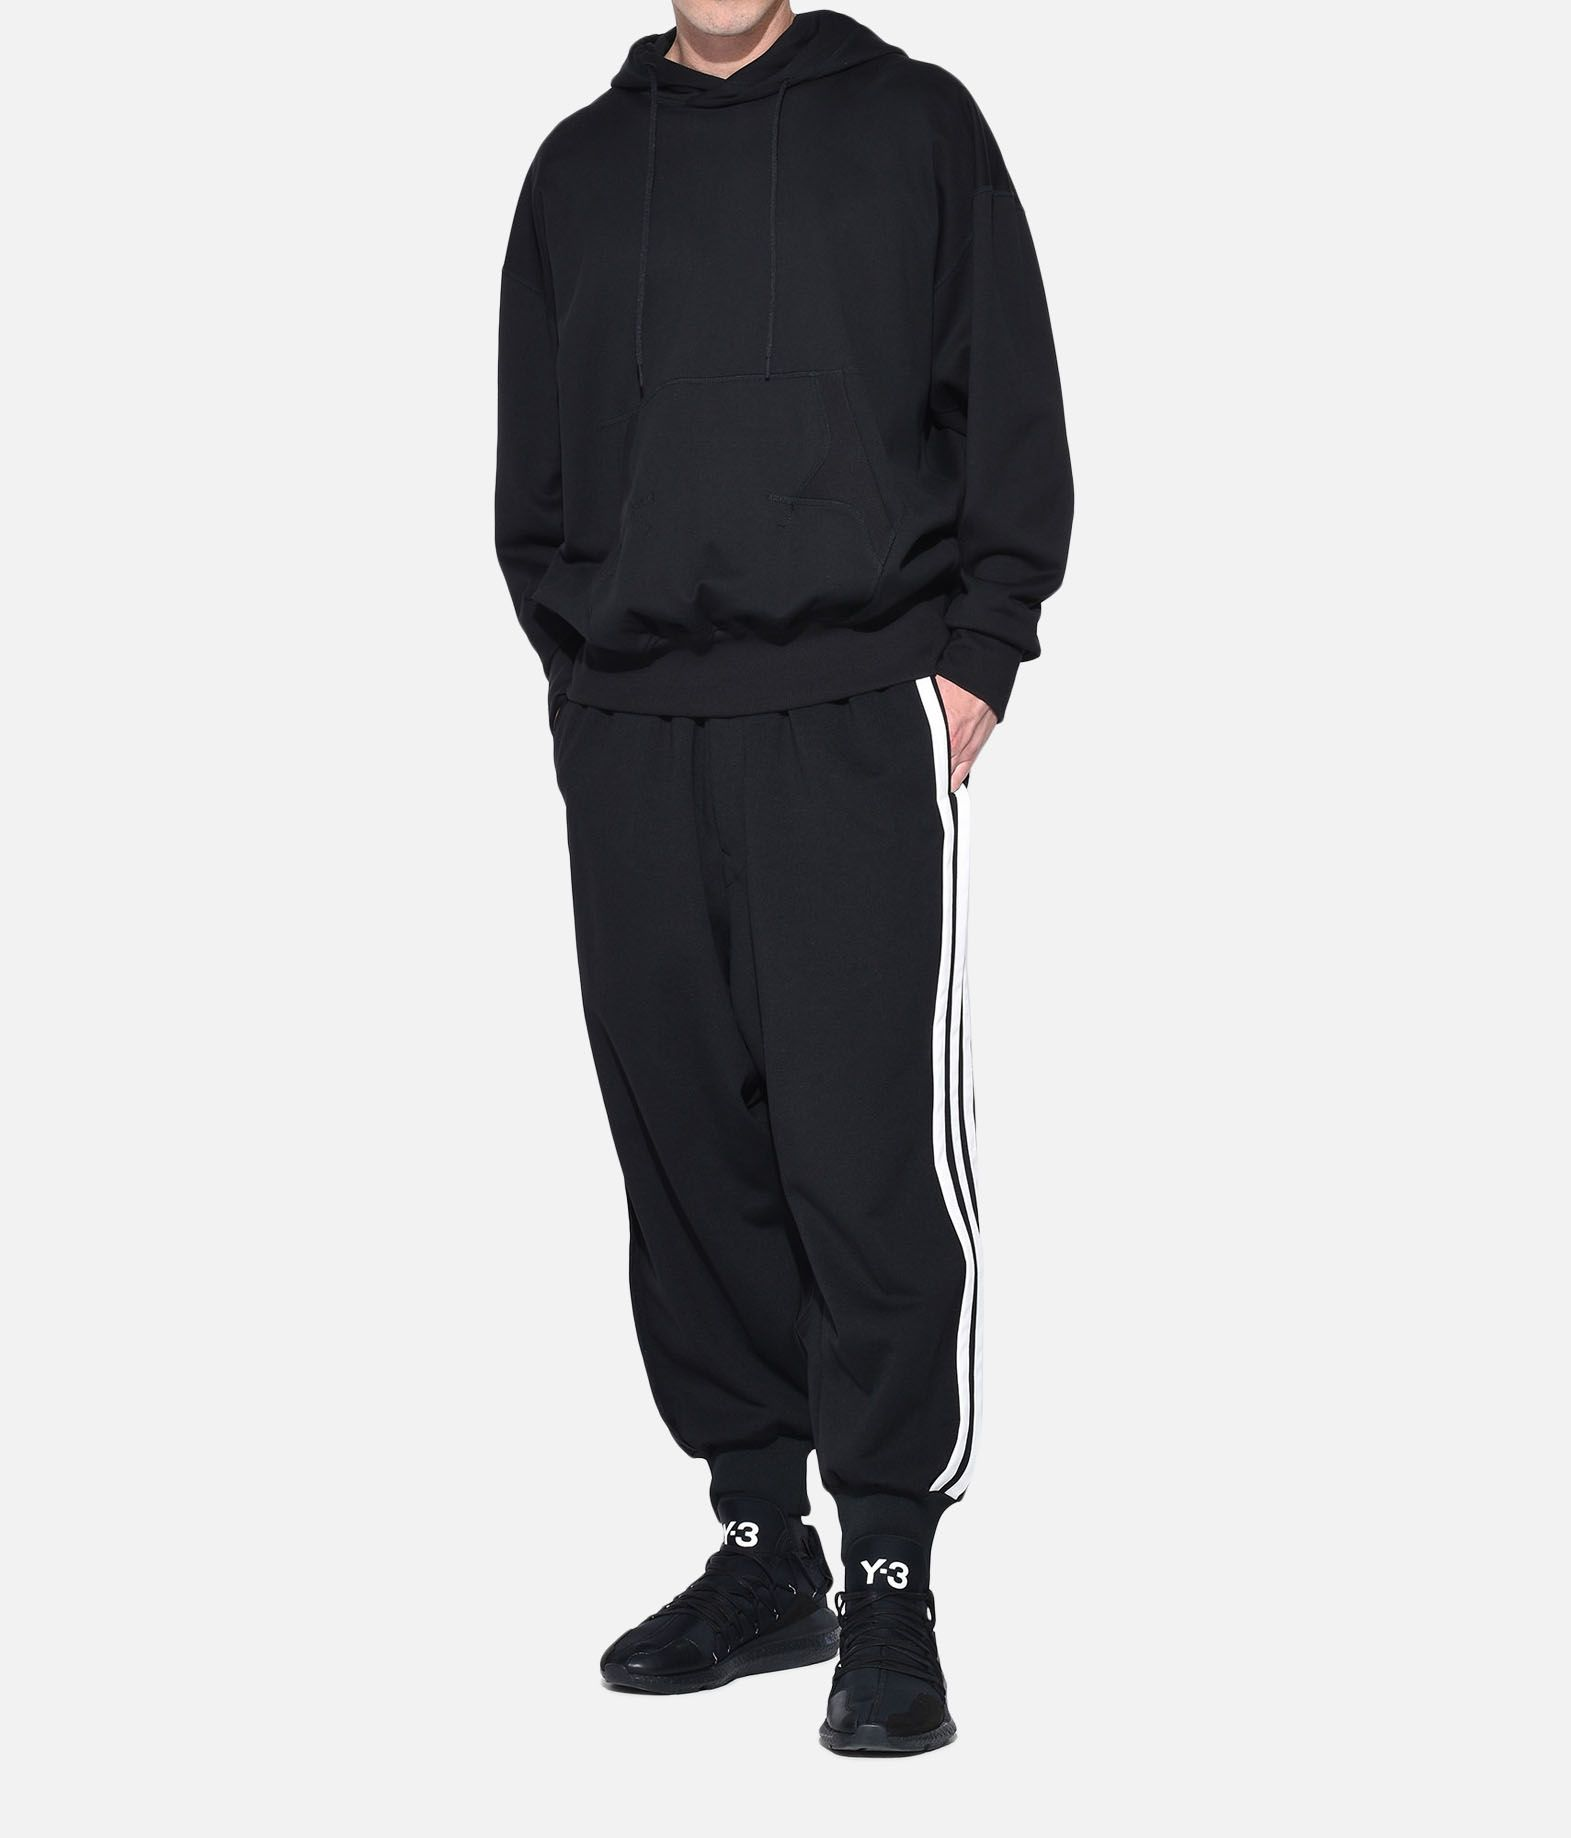 Y-3 Y-3 Stacked Logo Hoodie Hooded sweatshirt Man a